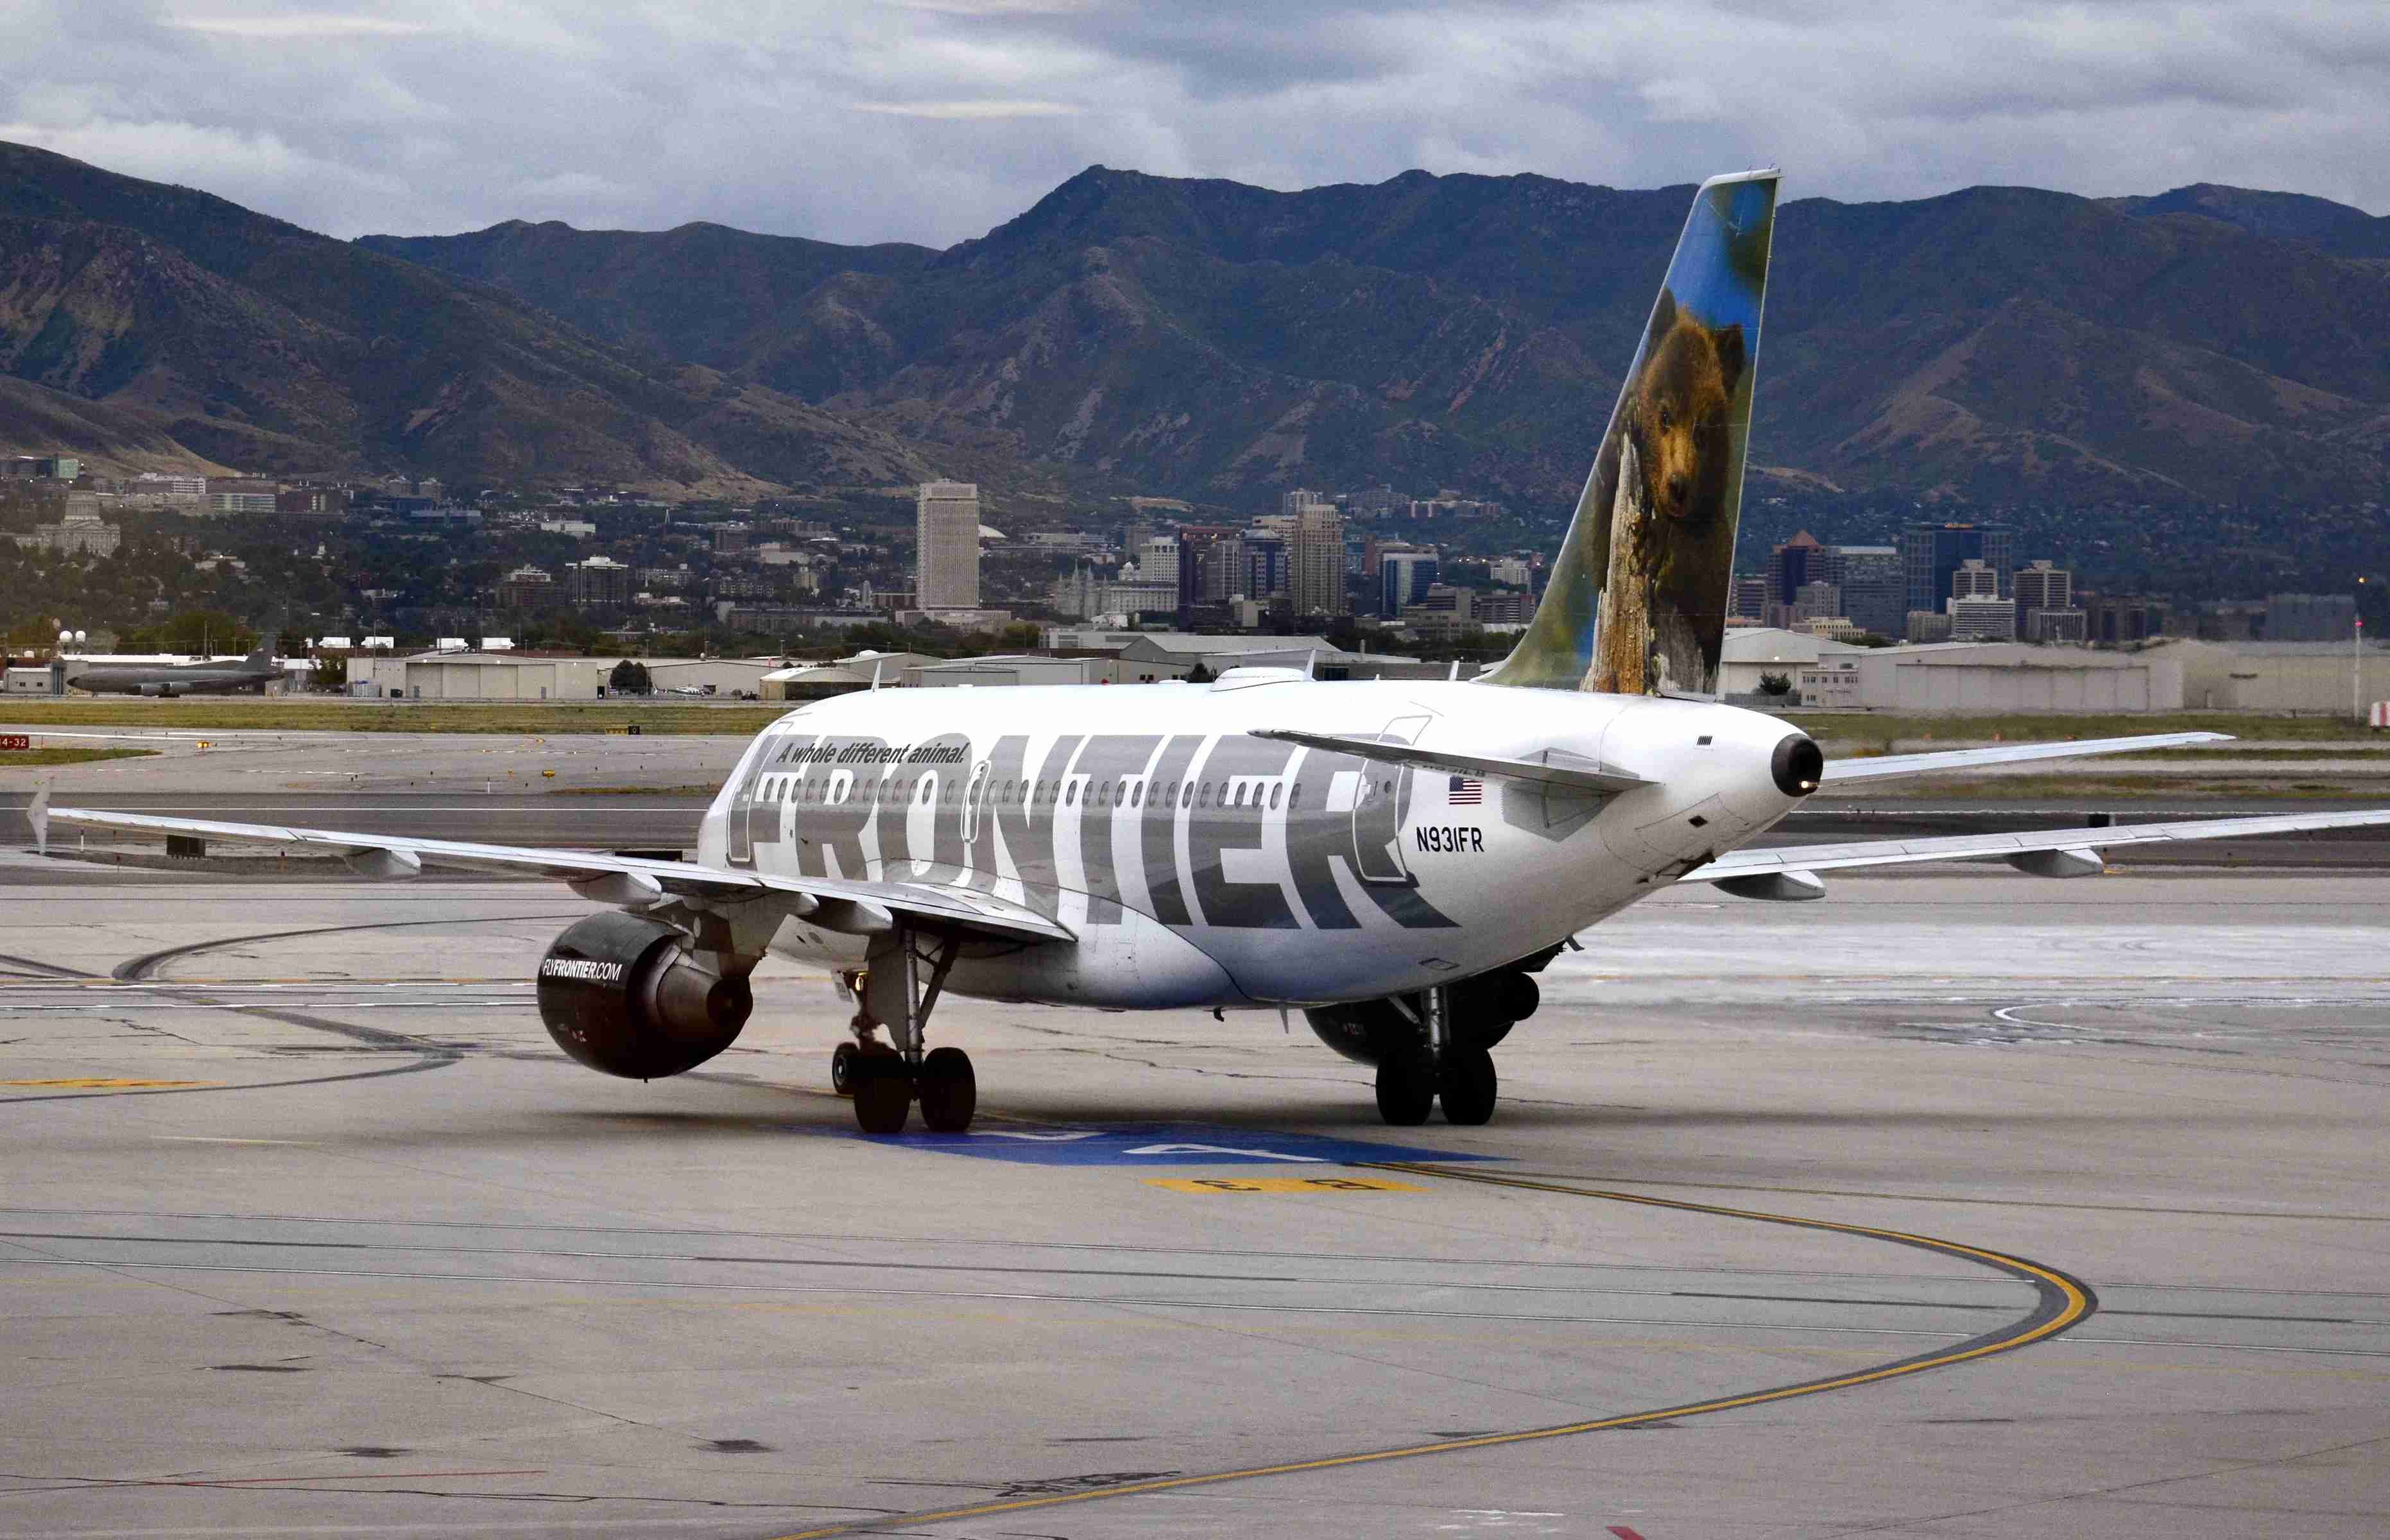 A Frontier Airlines Airbus A319 taxis toward the runway at Salt Lake City International Airport in September 2014 (Photo by Robert Alexander/Getty Images)